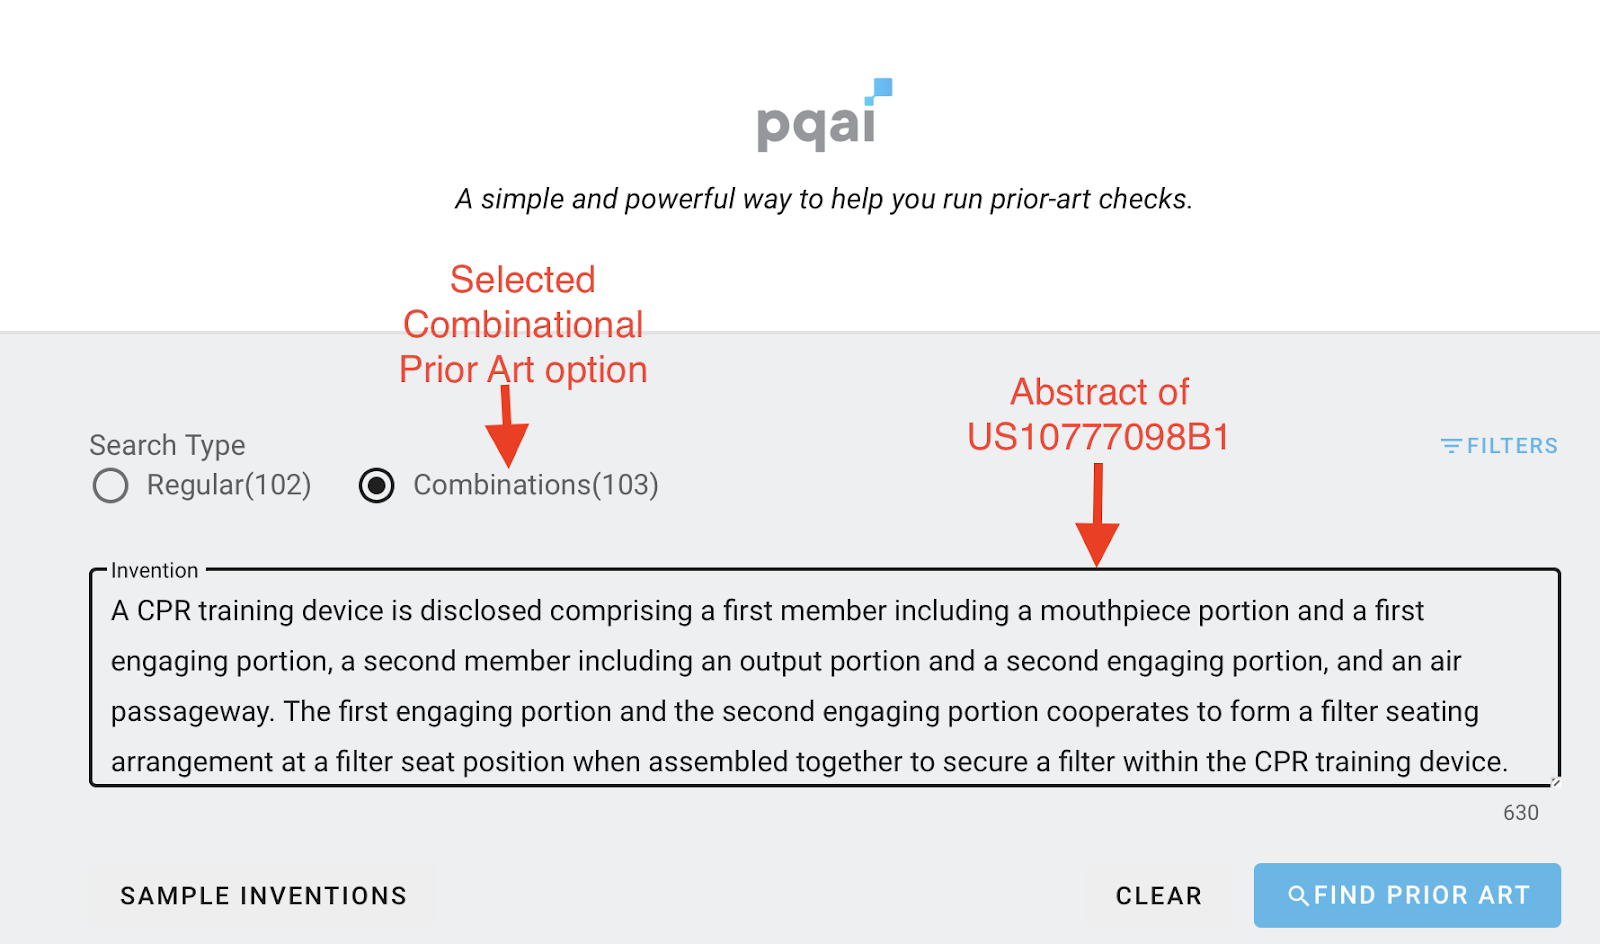 Avoid 103 type rejection by conducting combinational prior art search using PQAI  Snapshot from PQAI